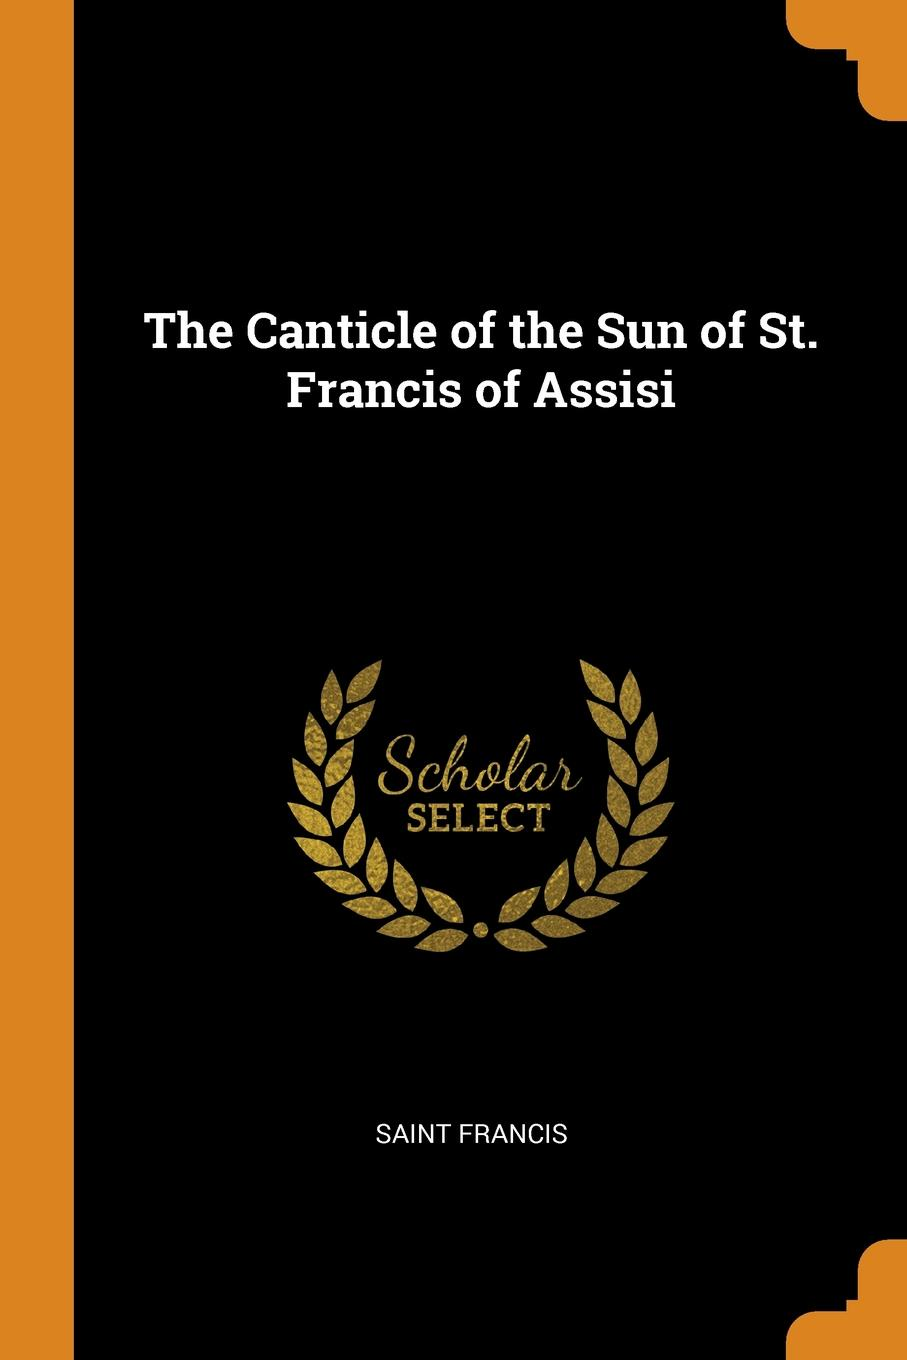 Saint Francis. The Canticle of the Sun of St. Francis of Assisi